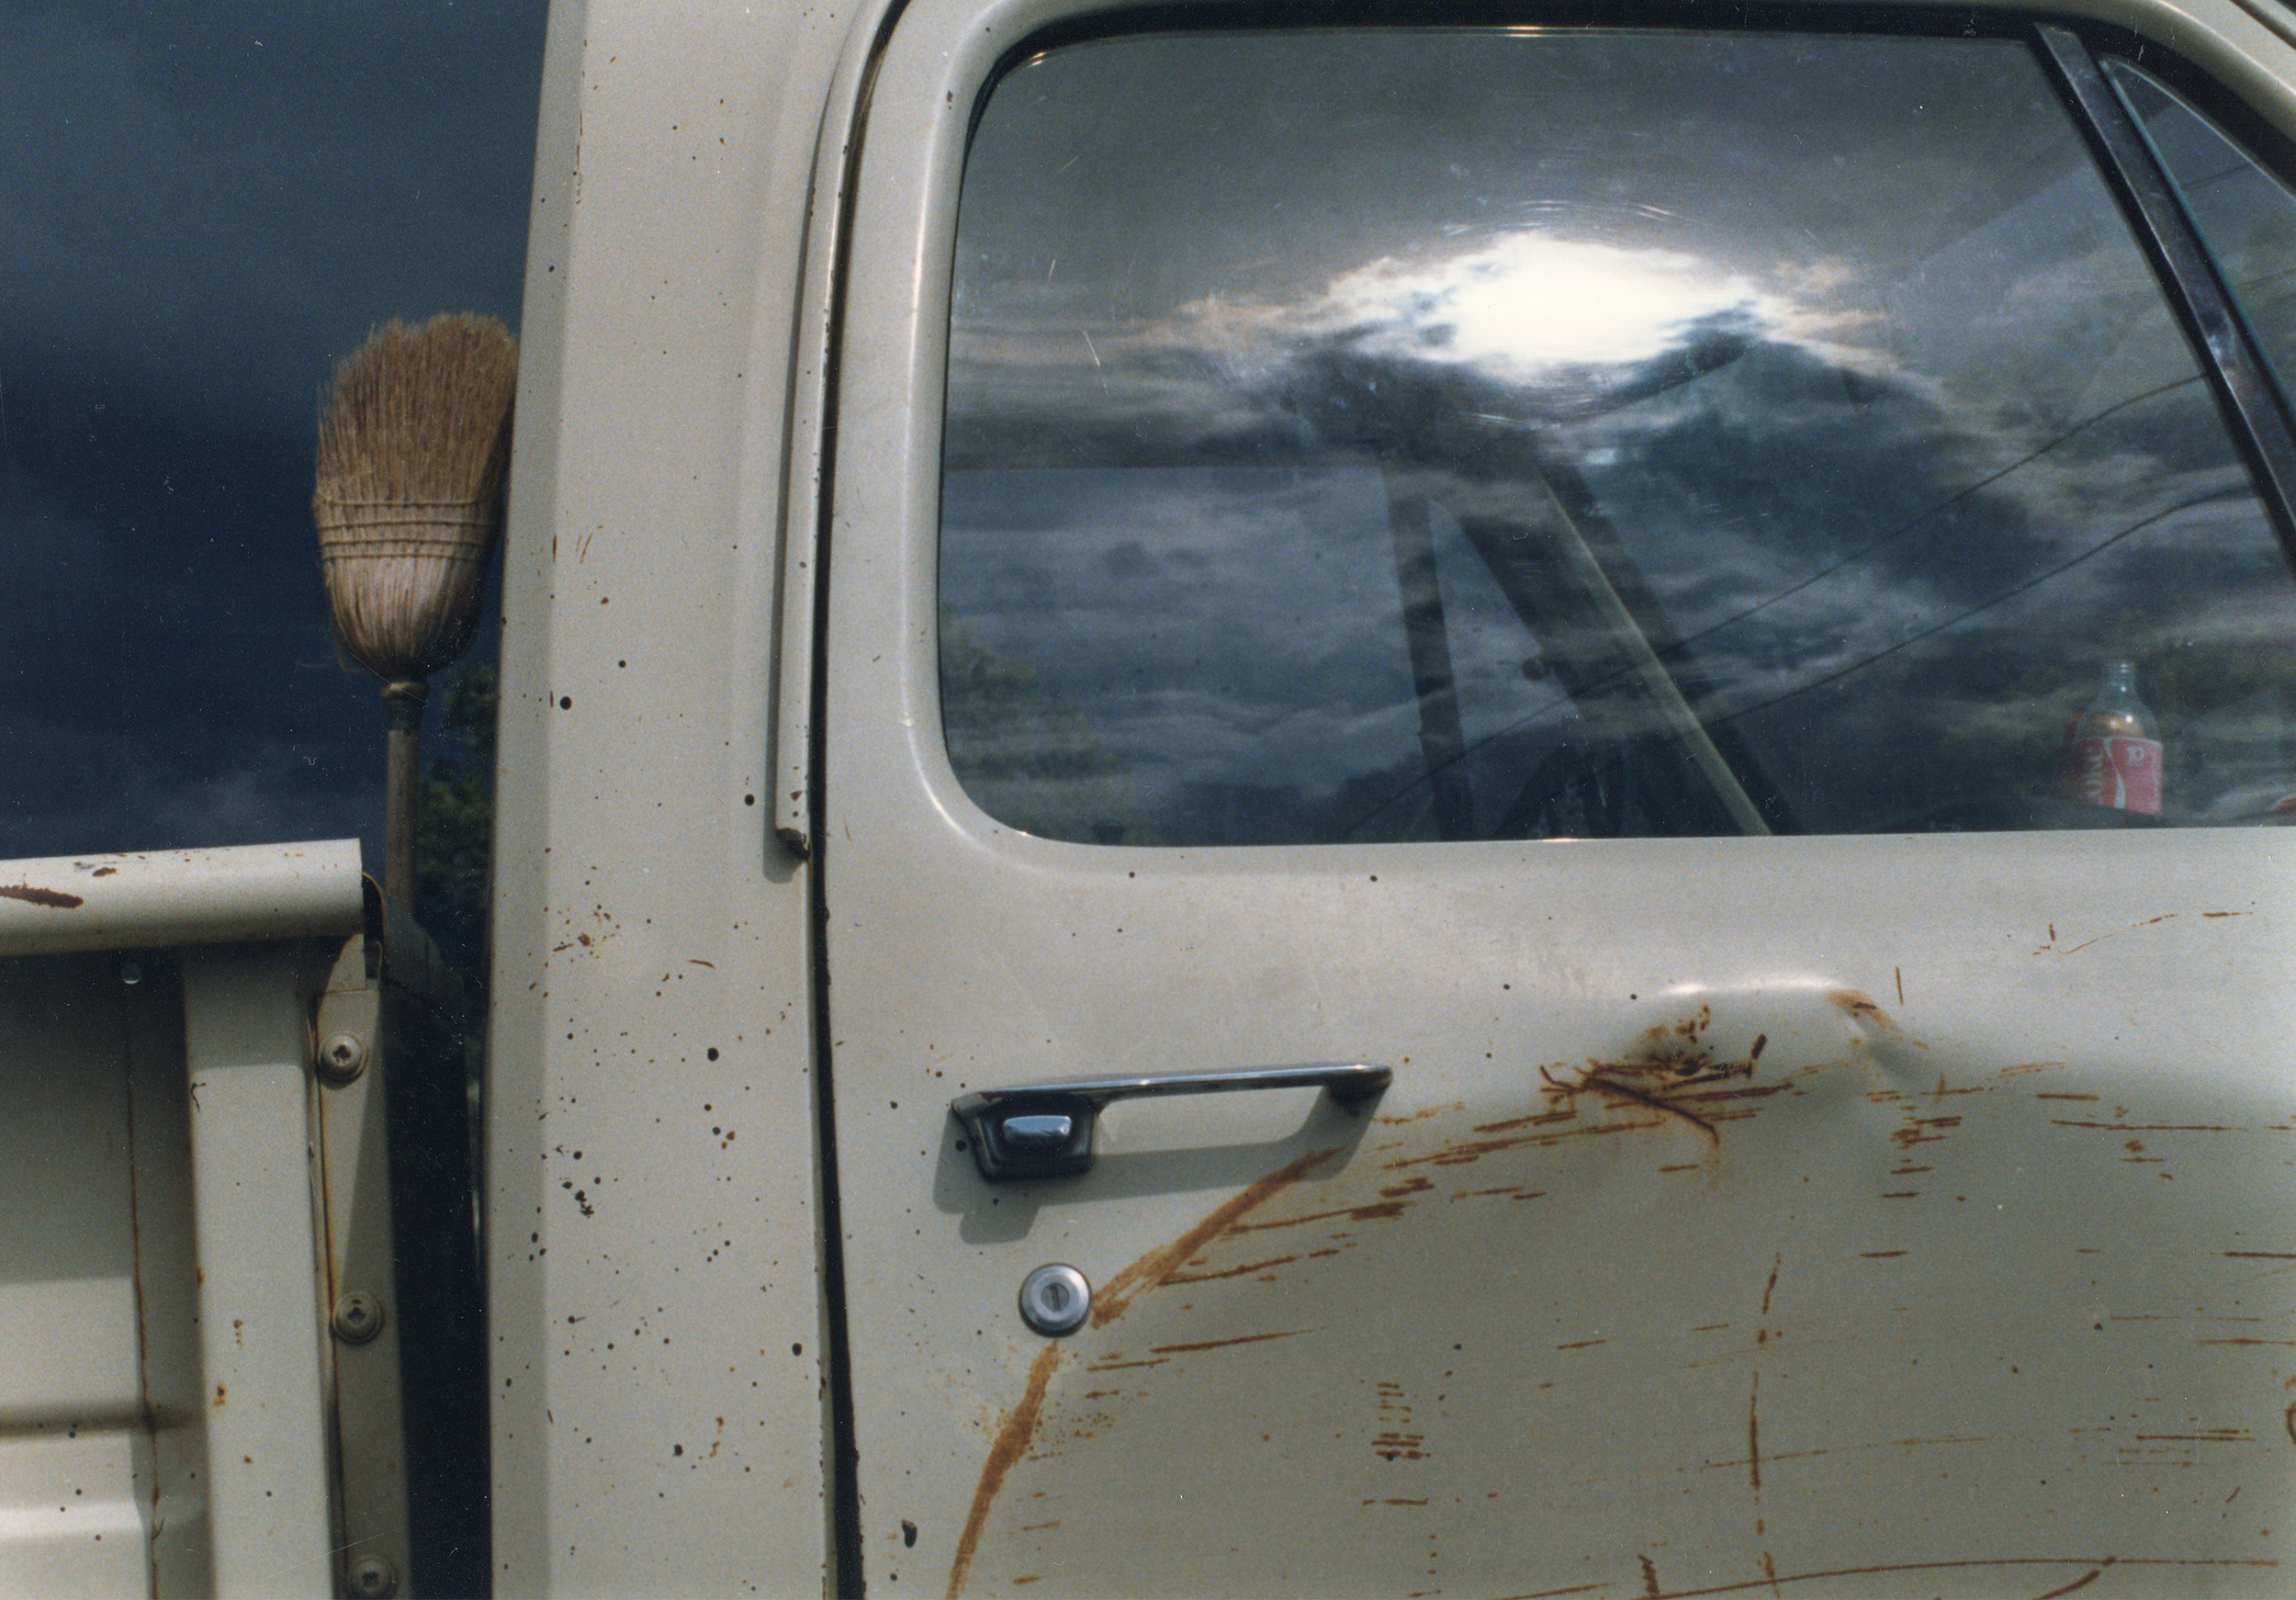 Truck, New Mexico